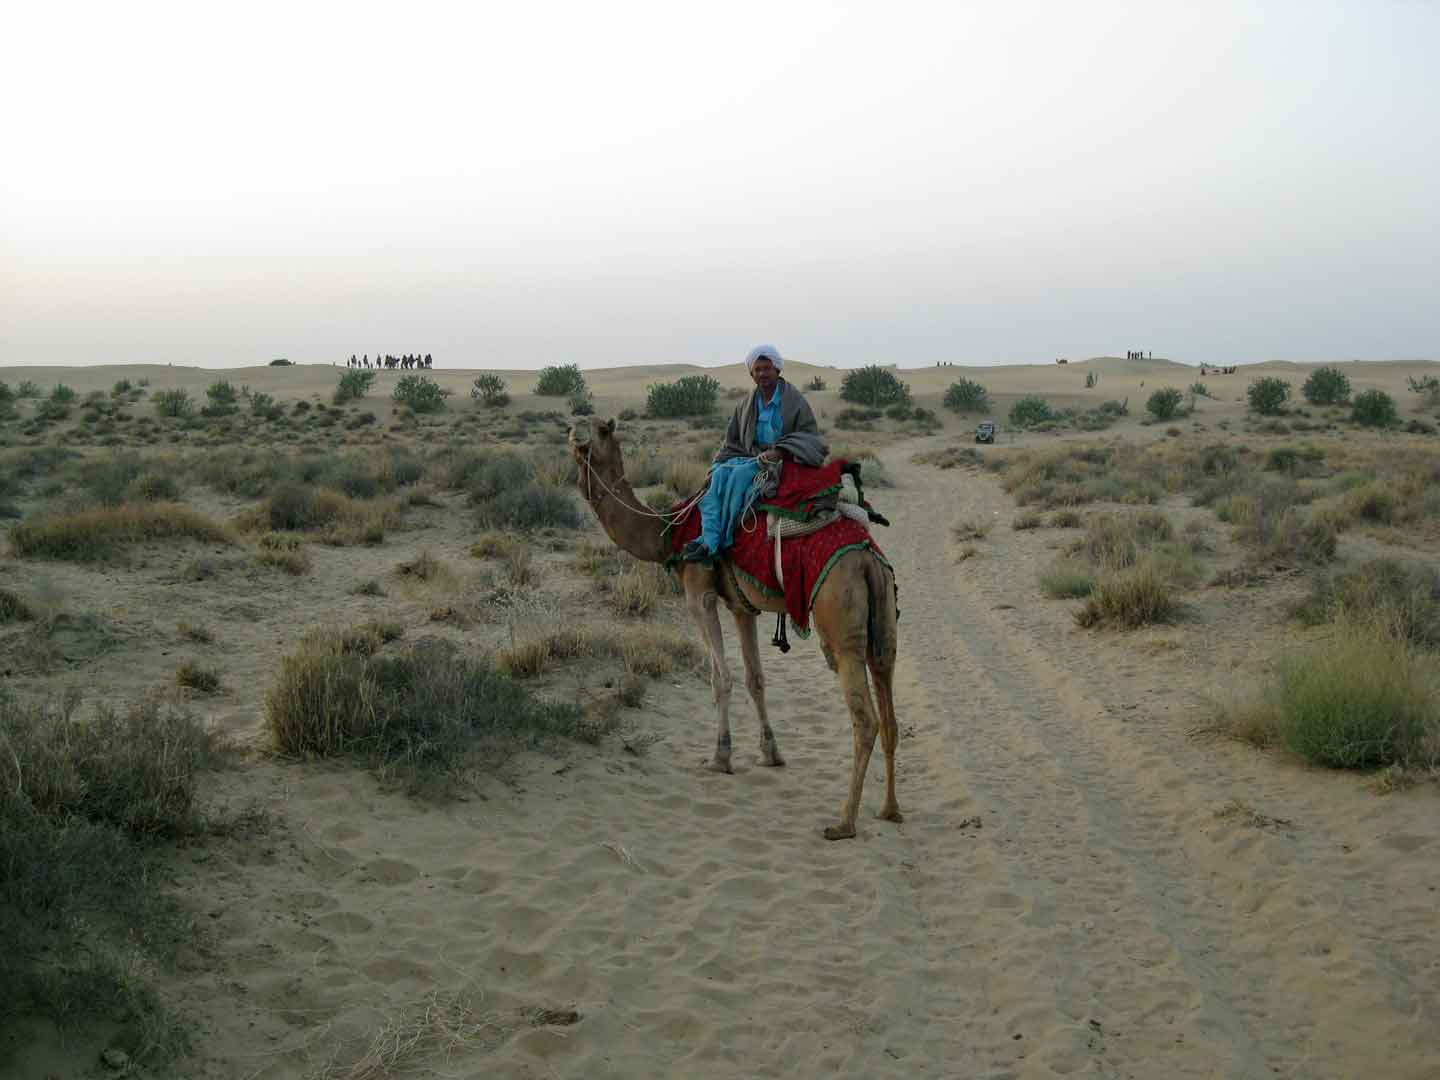 Sam Dunes near Jaisalmer camel trek © J S Bridges